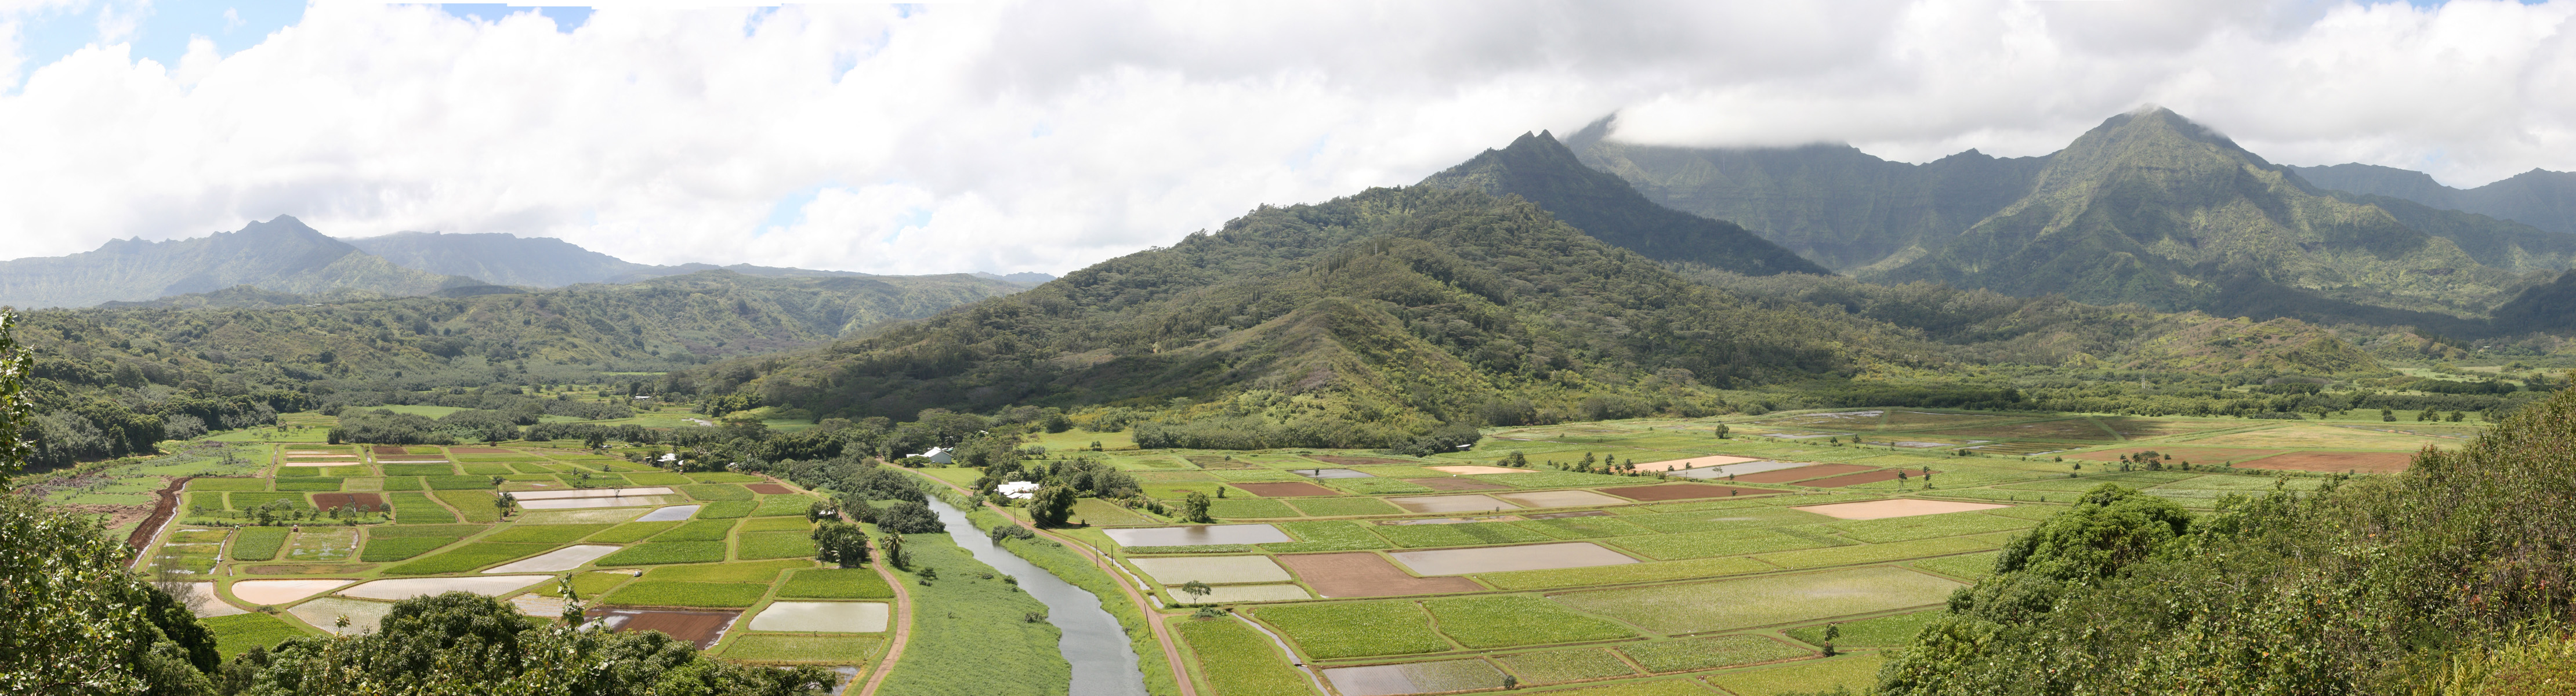 hanalei dating The best restaurants on kauai for hawaiian  hanalei is located on the north shore of kauai and is legendary for its green mountains  dating back to the .